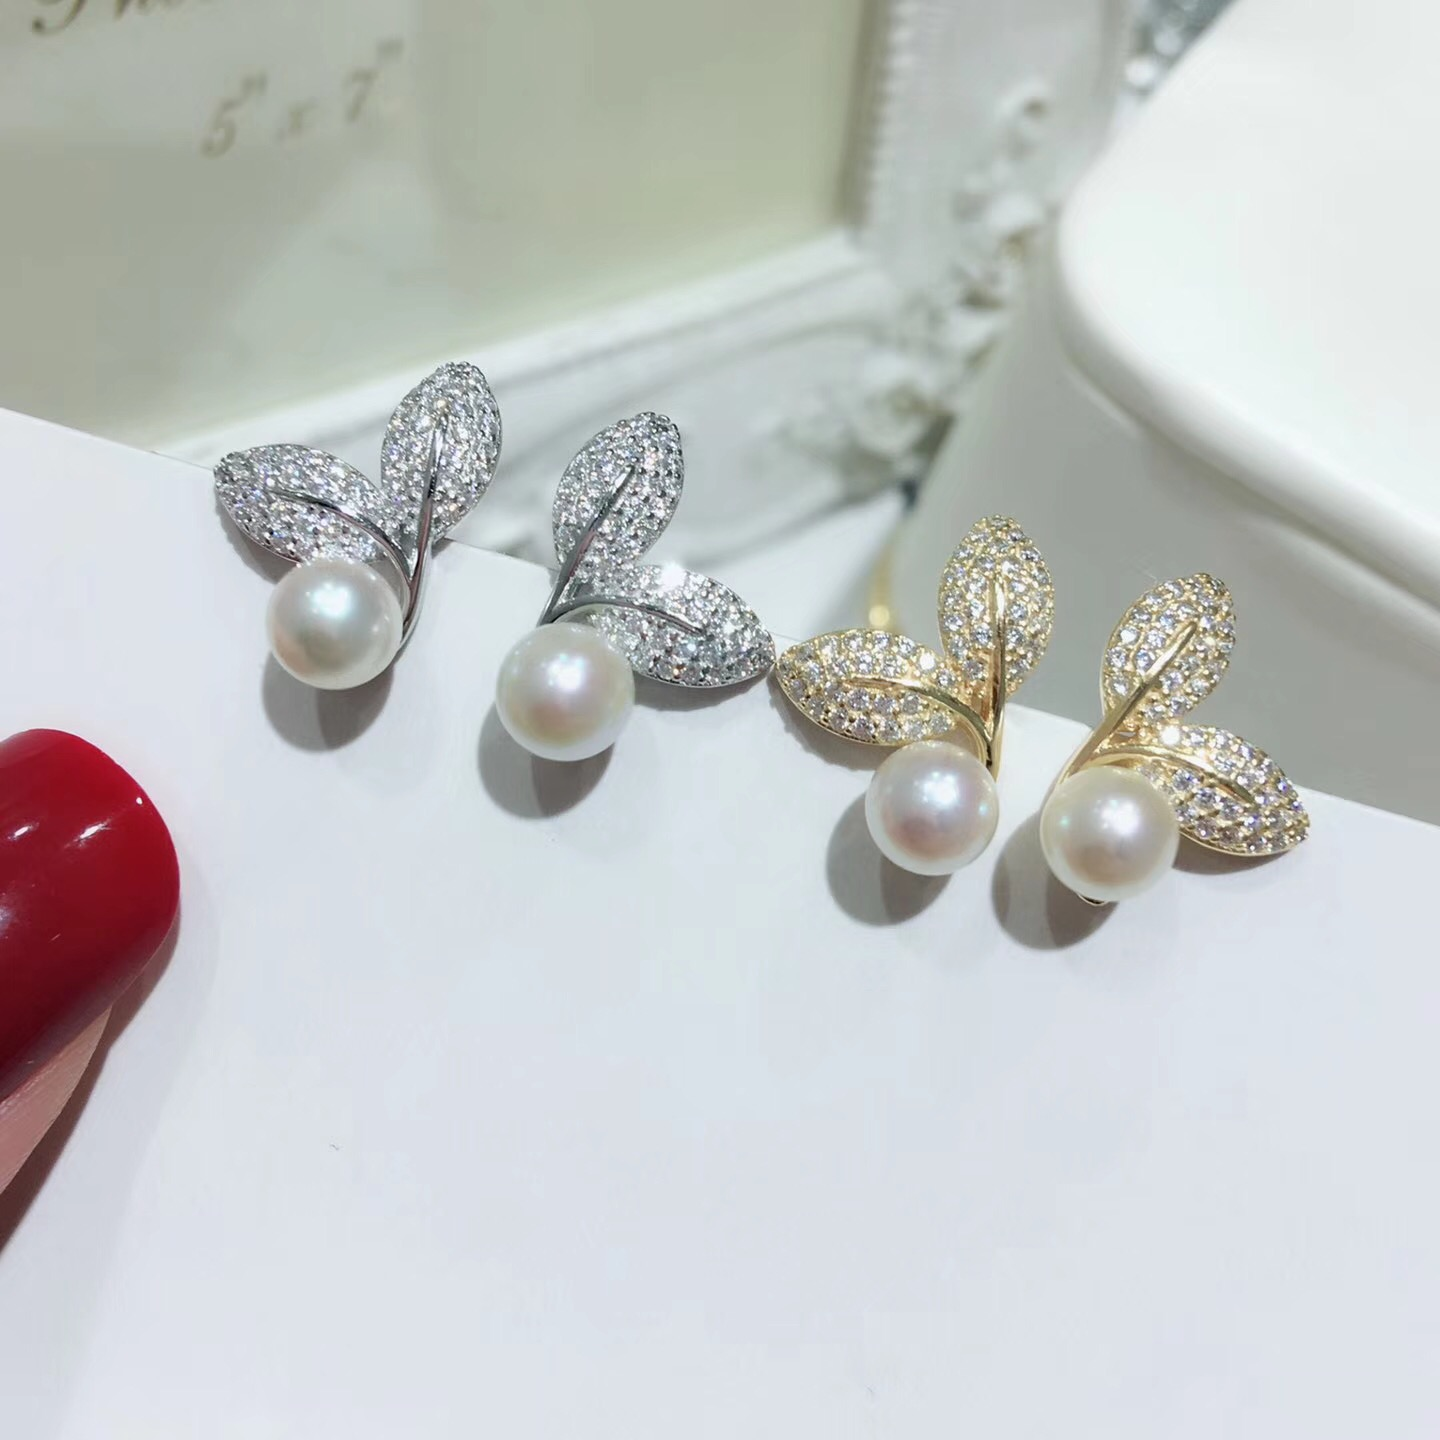 S925 Solid Silver Leaf Design Stud Earrings Settings Shinning Pearl Earrings Findings Silver Gold Color 3Pairs